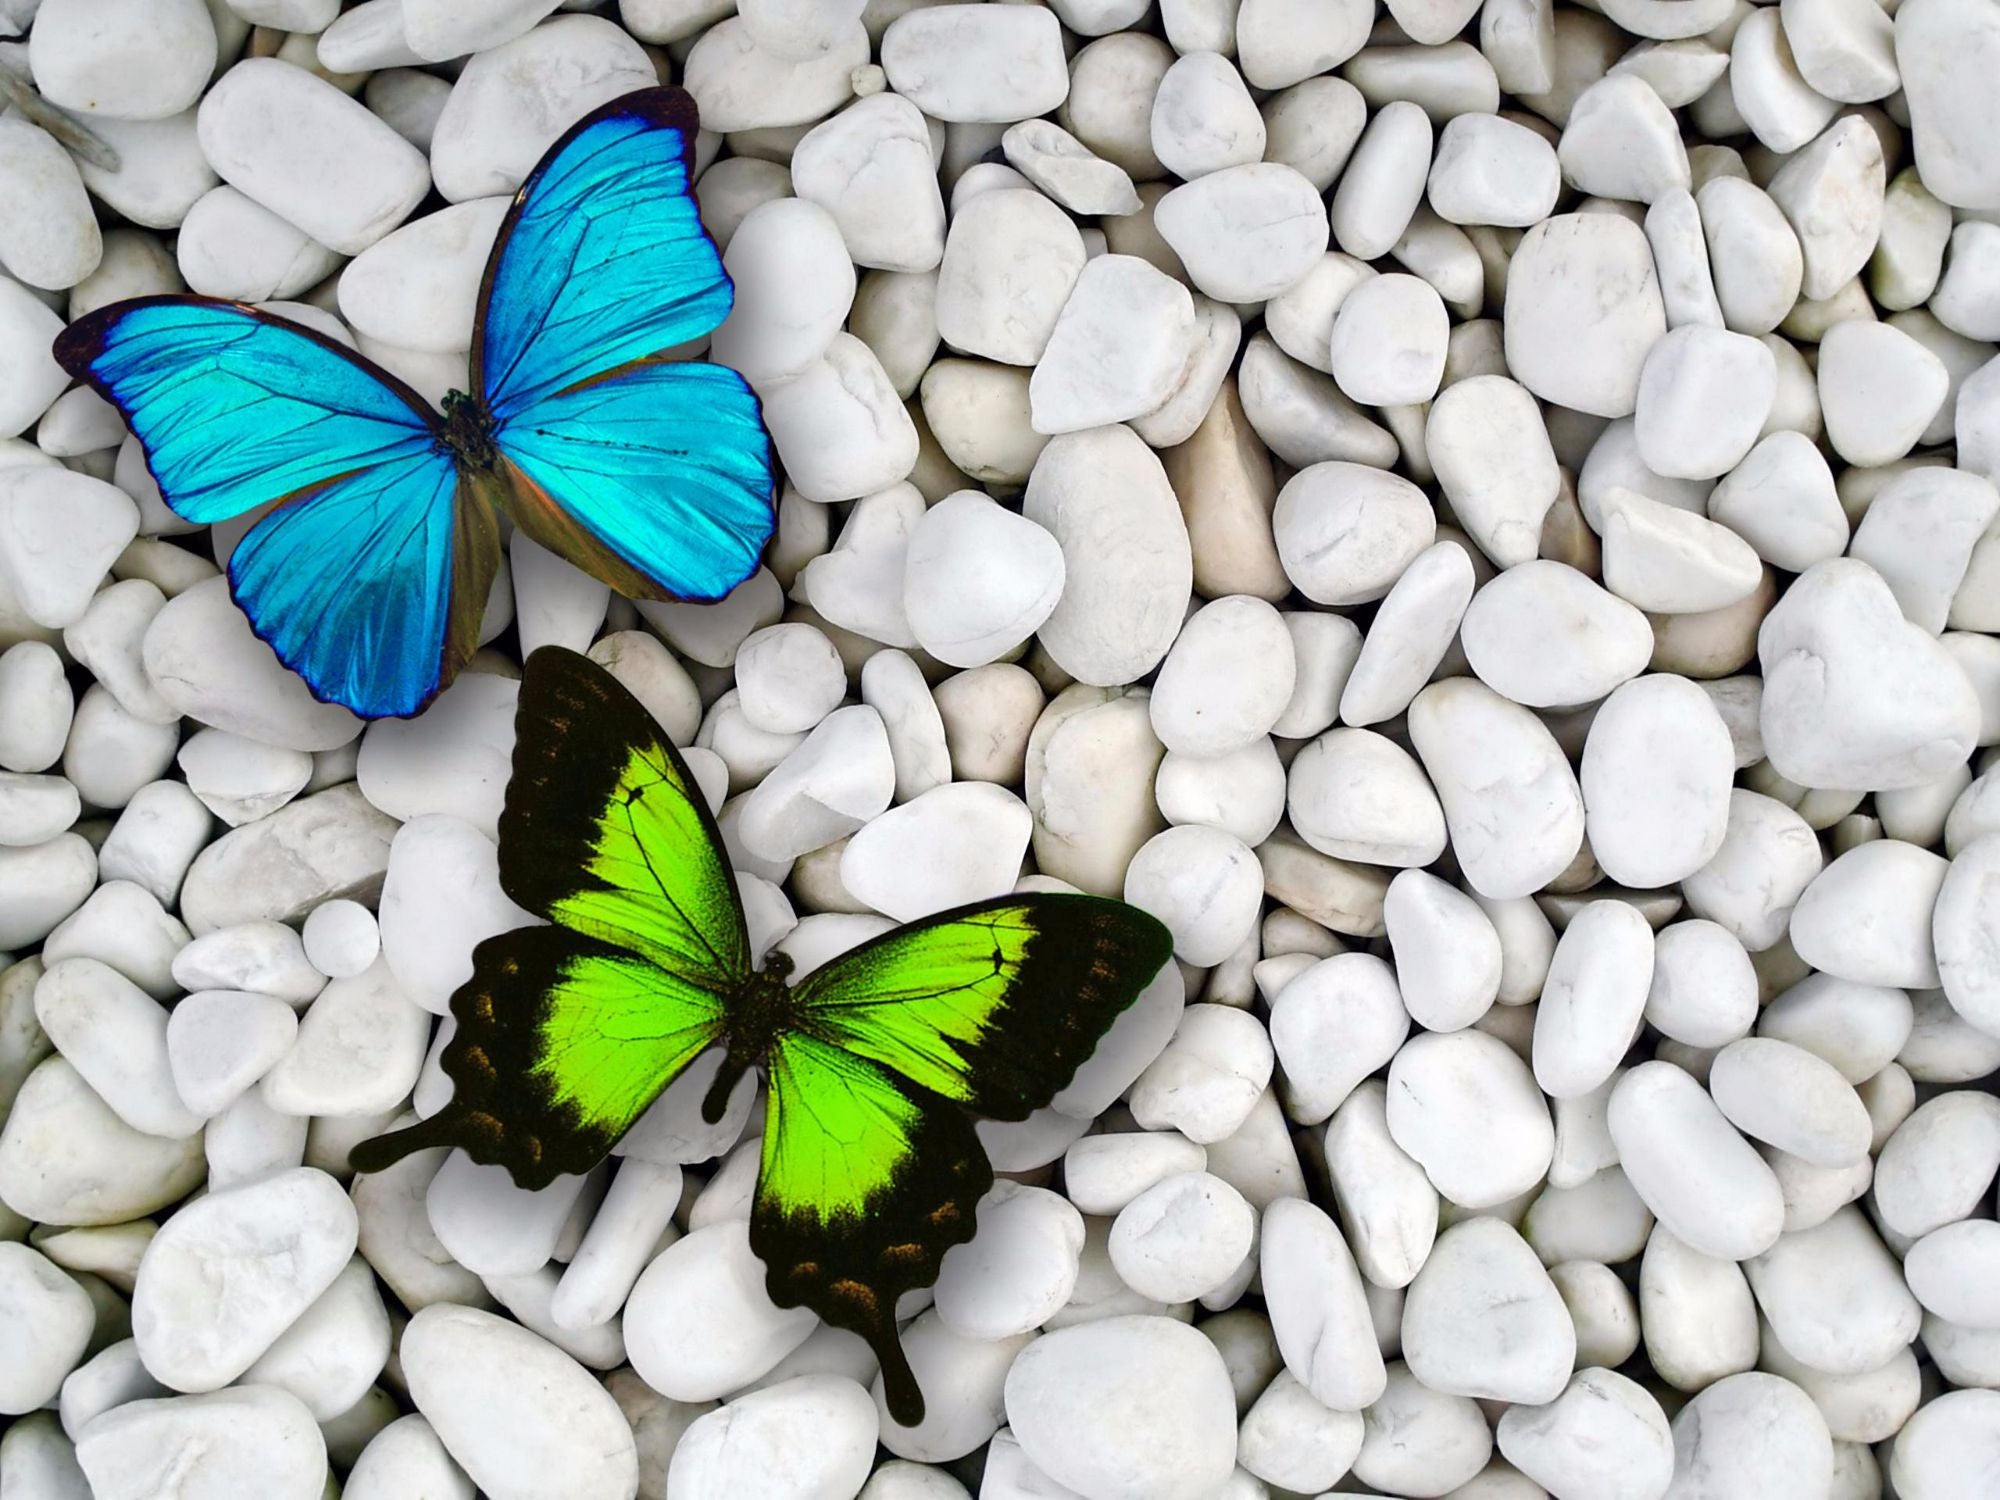 7588a66defd948 Beautiful Butterflies Sitting On Pebbles - Framed Prints by Hamid Raza